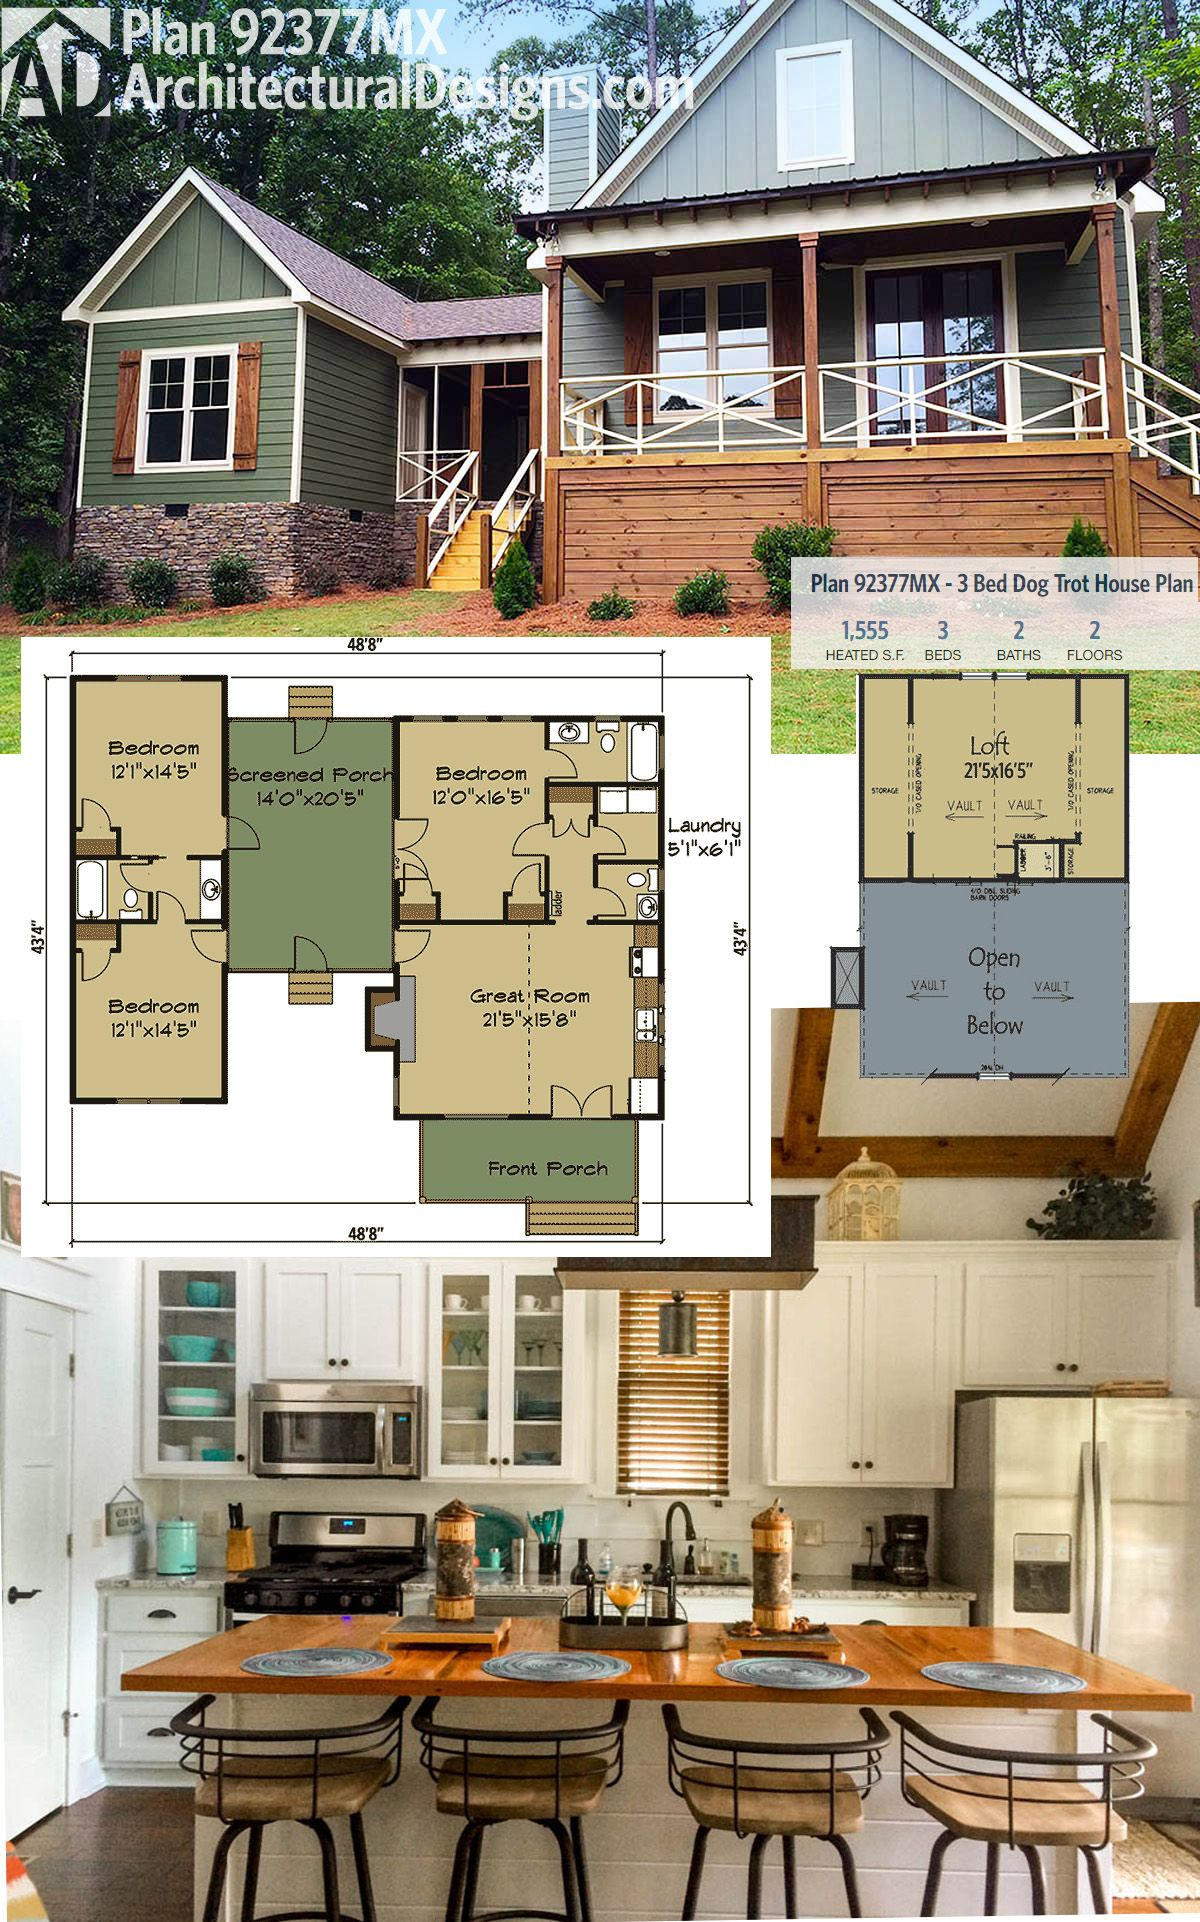 Plan 92377mx 3 Bed Dog Trot House Plan With Sleeping Loft House